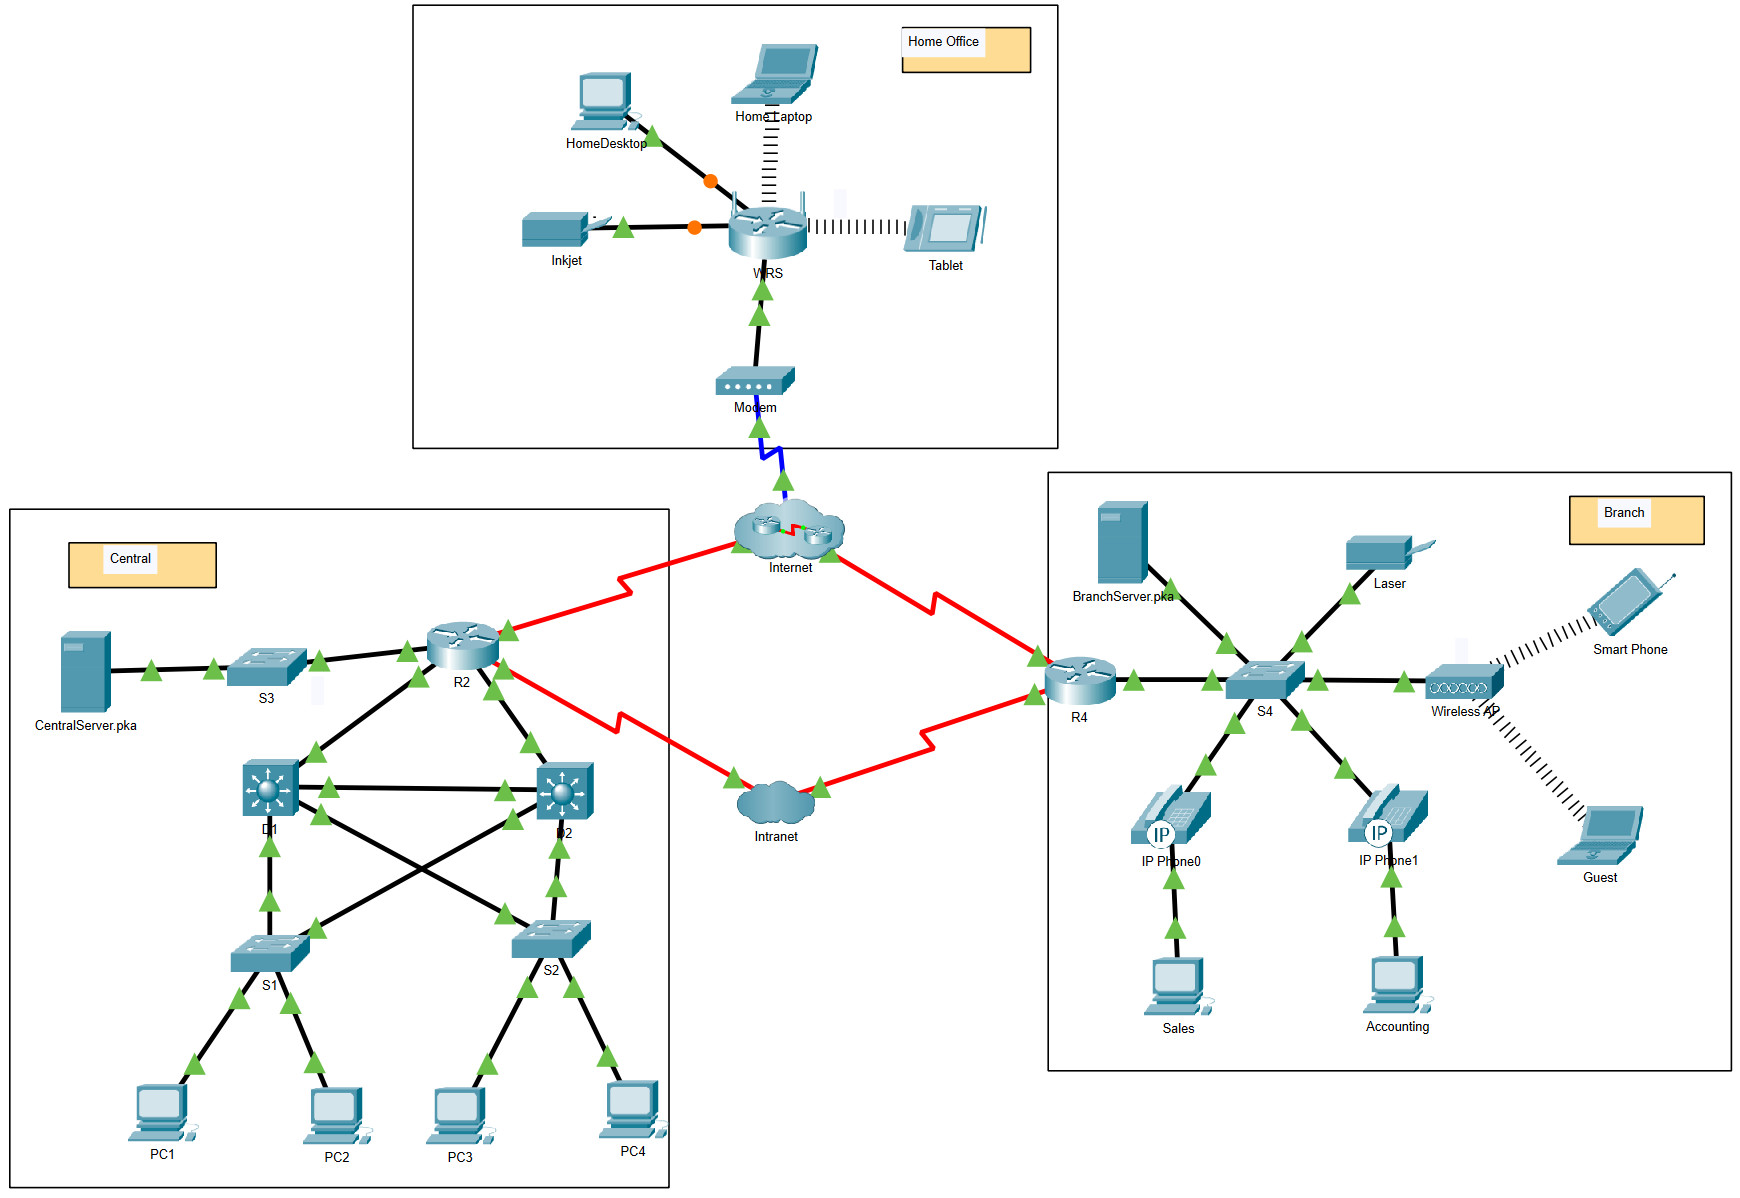 6.2.7 Packet Tracer - Investigate NAT Operation (Answers) 2